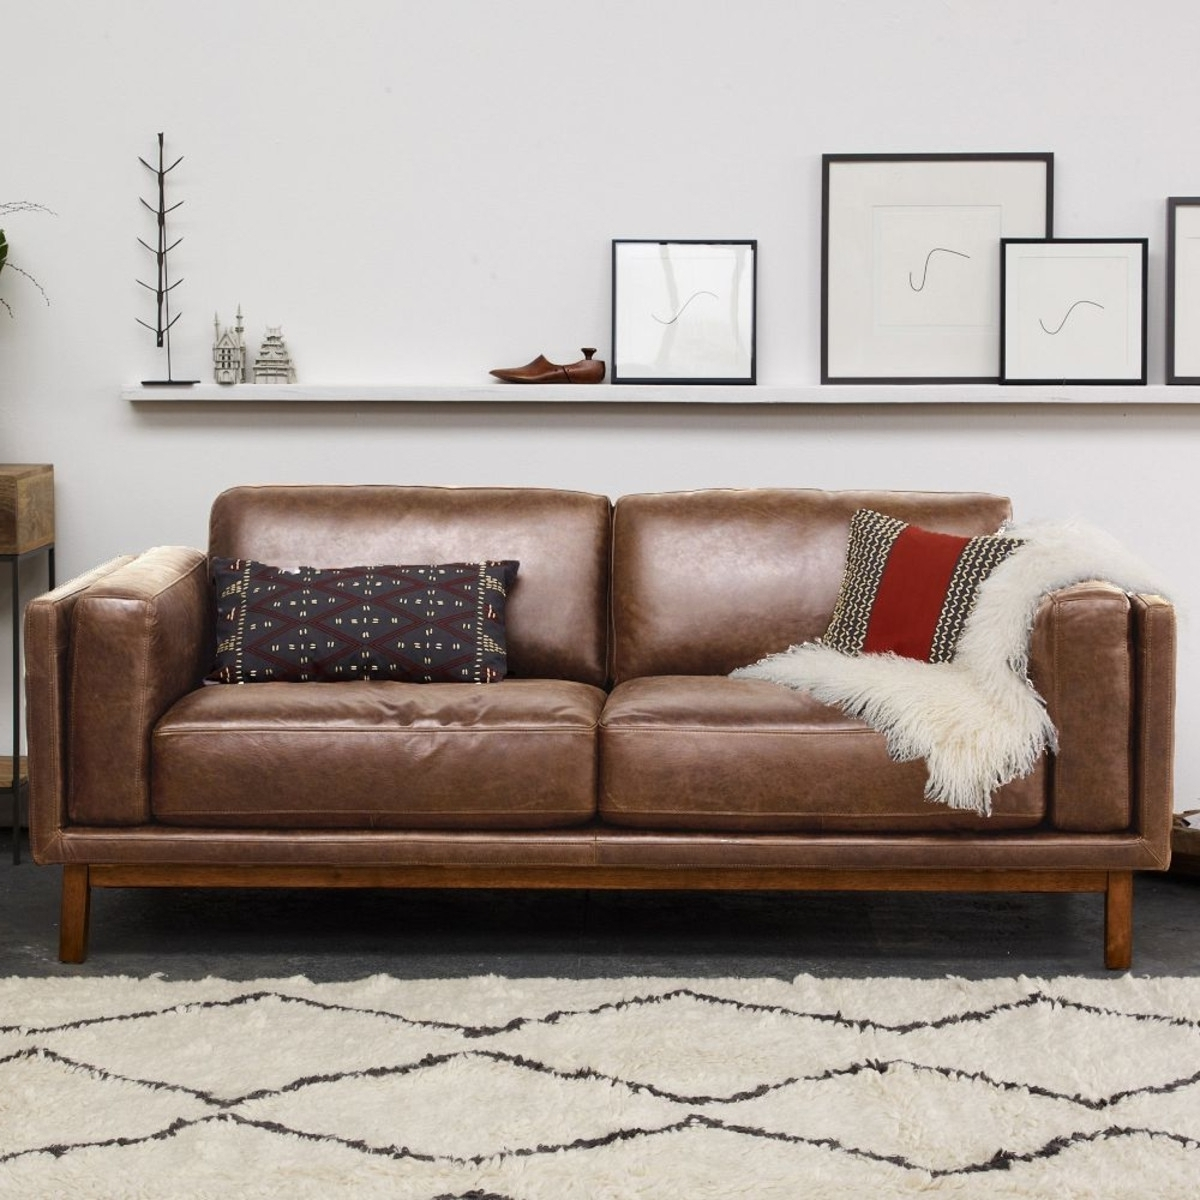 Recent Sectional Sofas At Bad Boy Throughout Bad Boy Furniture Sectional Sofas • Sectional Sofa (View 10 of 15)